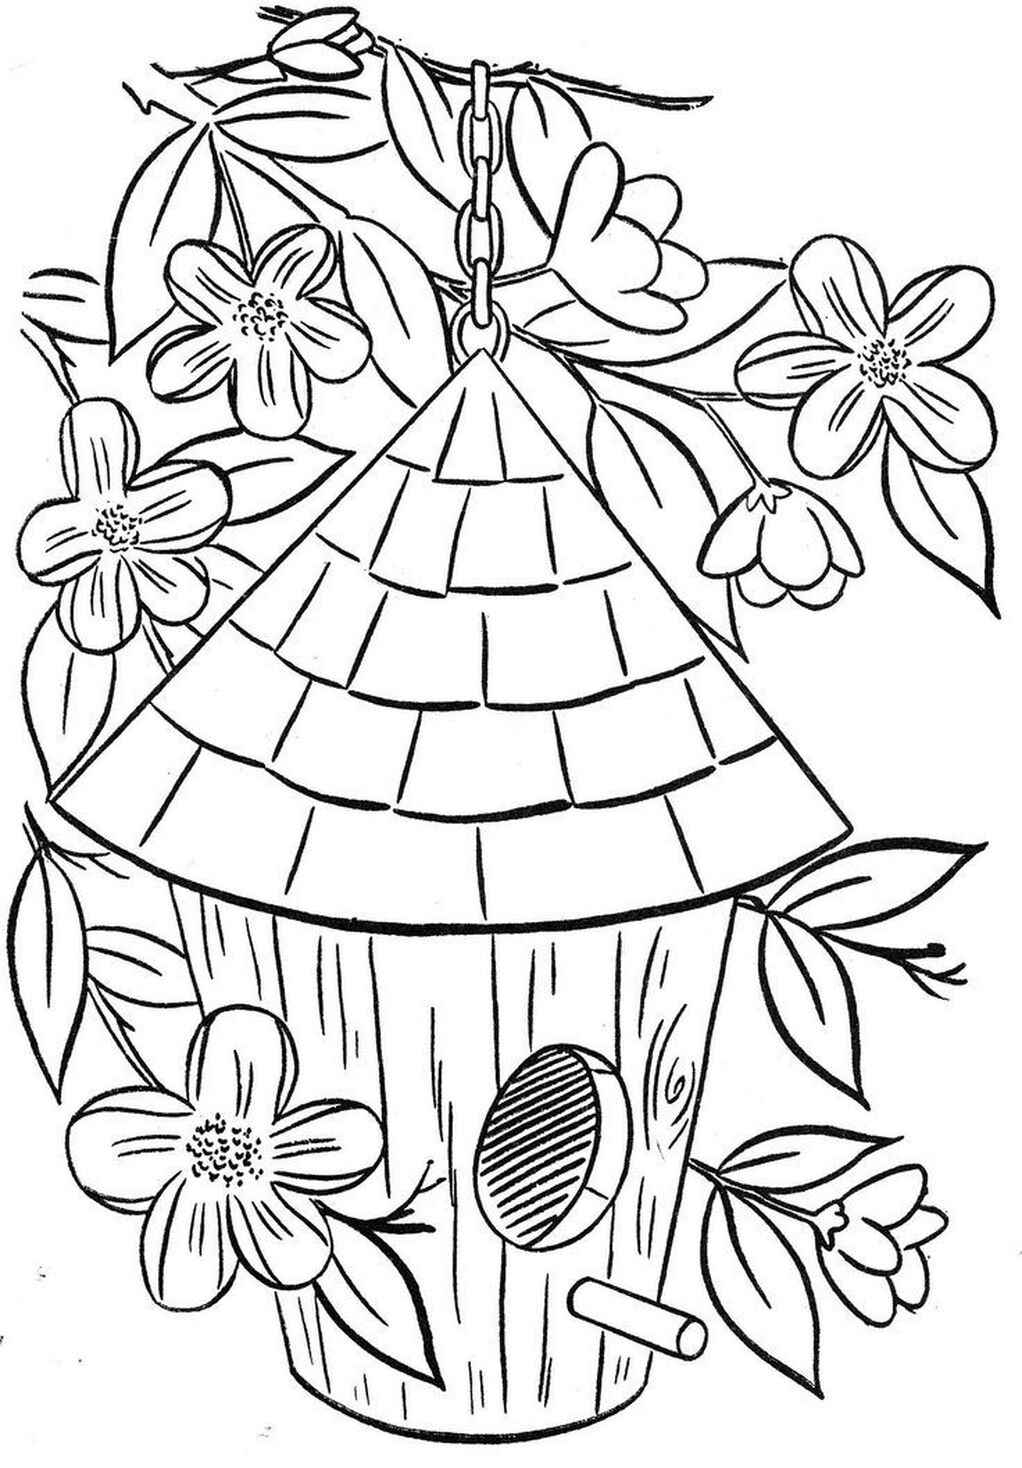 Awesome Coloring Page Of Birdhouse